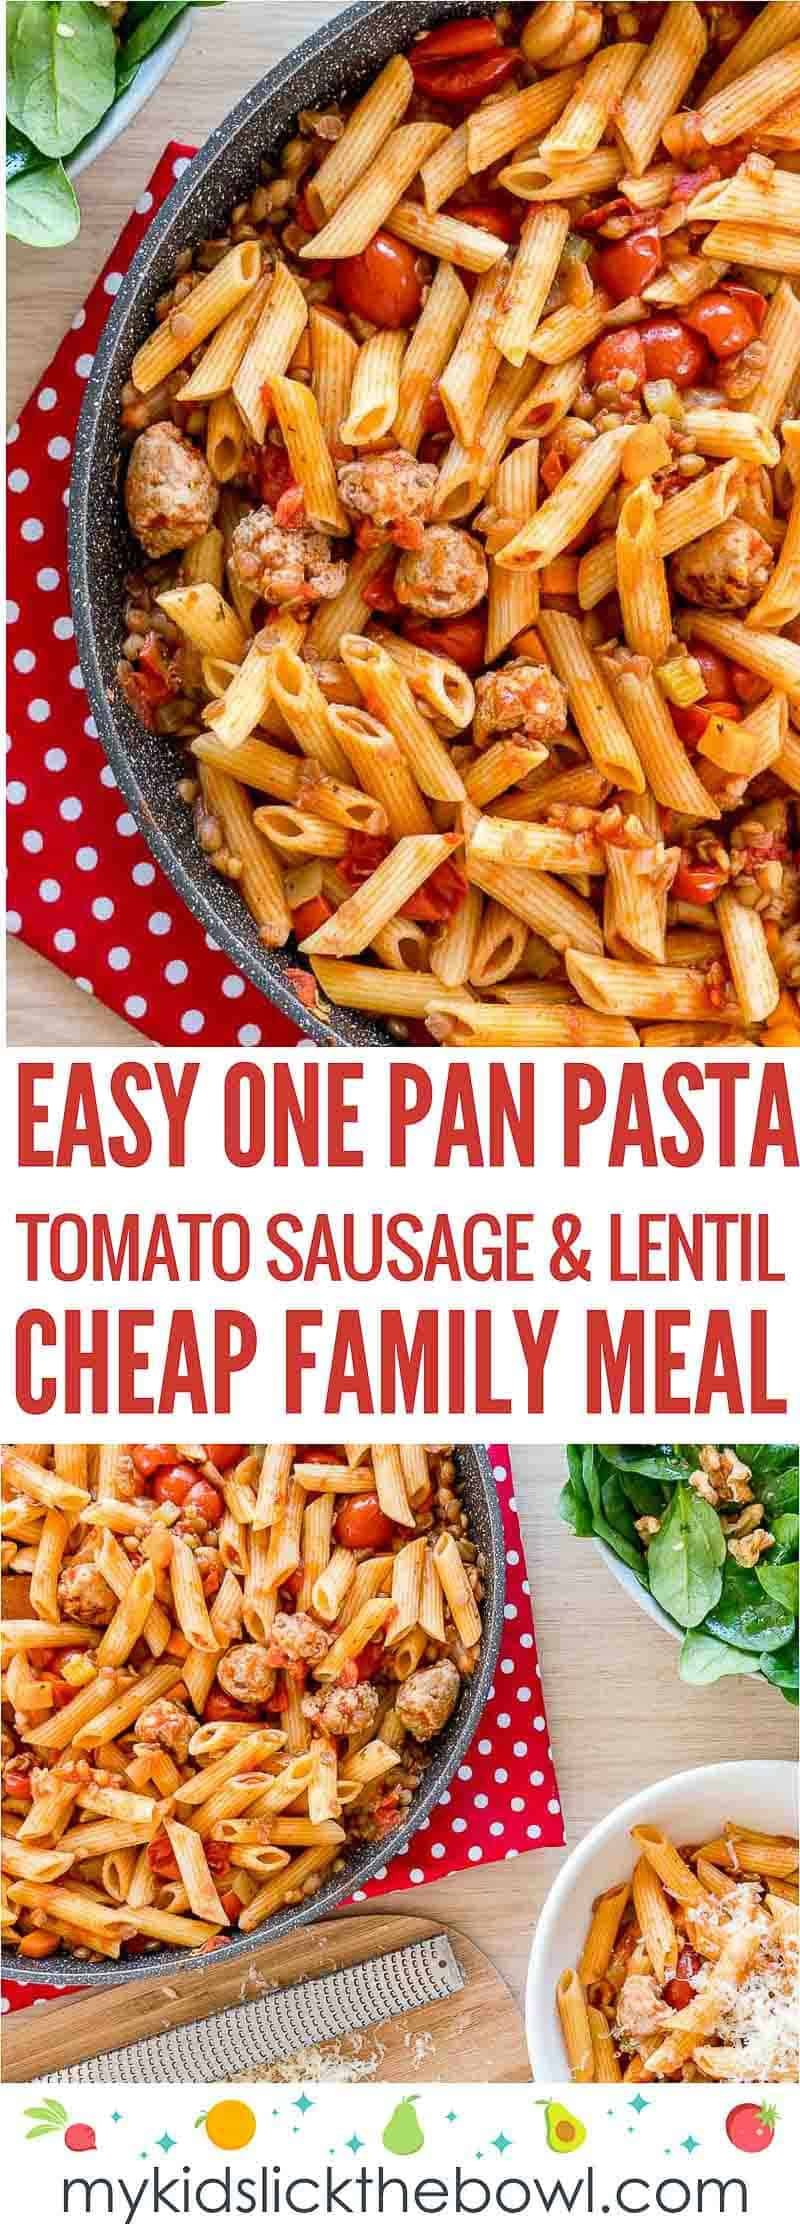 One pan pasta flavoured with tomatoes sausage and lentils